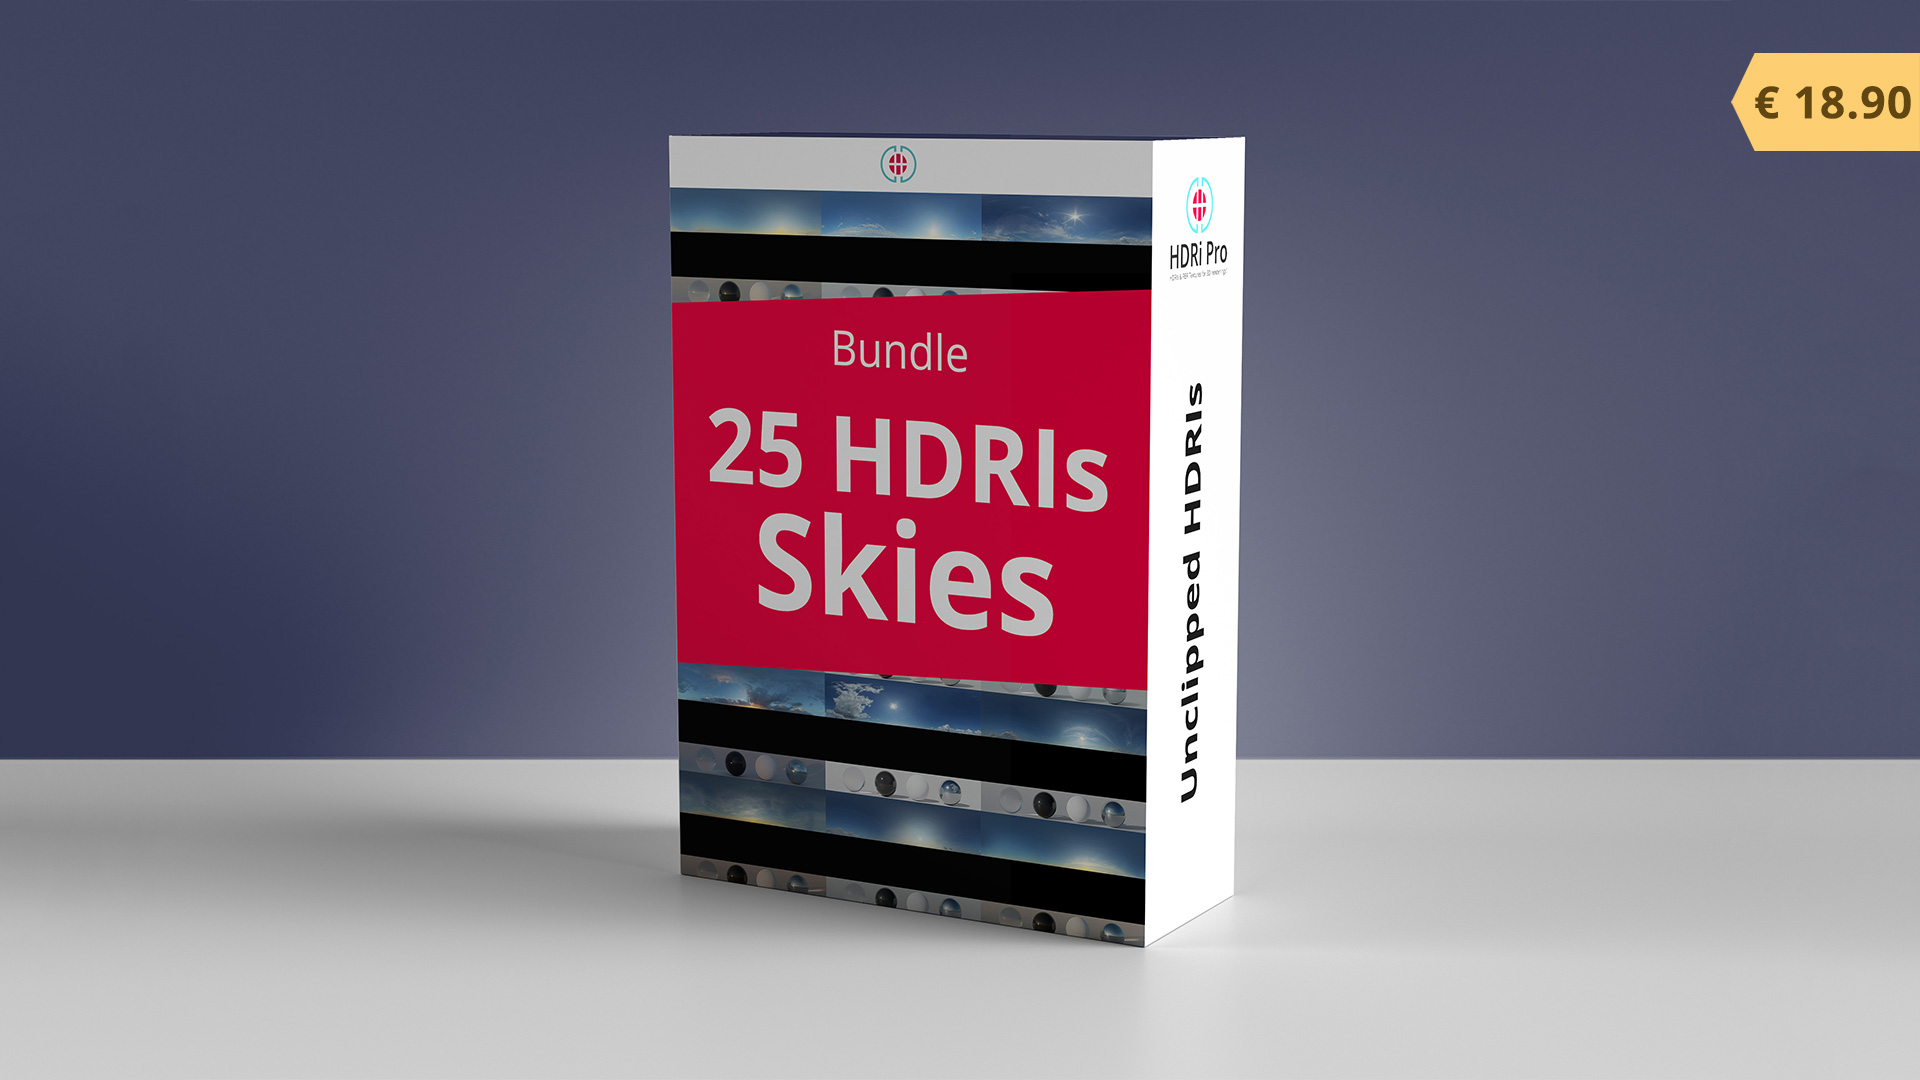 25 HDRIs Skies Bundle